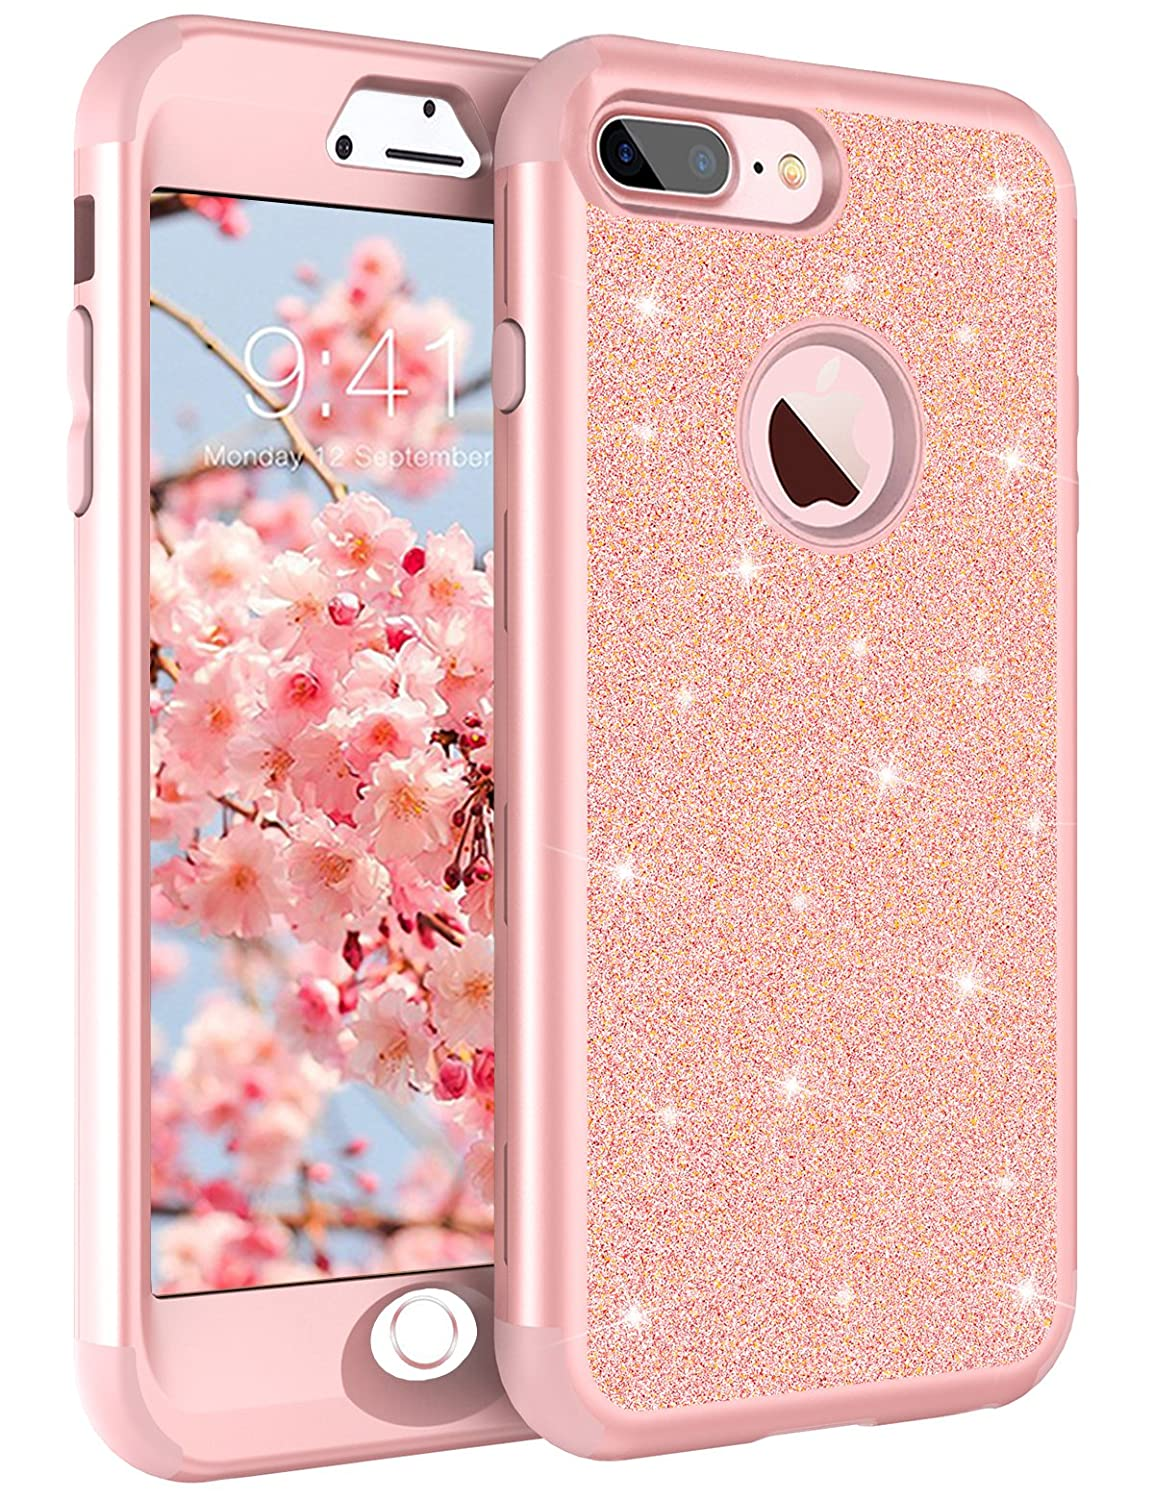 iPhone 8 Plus Case, iPhone 7 Plus Case Rose Gold for Women Girls, Tobomoco Shockproof Drop Protection 3 in 1 Glitter Bling Sparkly Hybrid Hard PC Soft Silicone Case for iPhone 7plus 5.5'